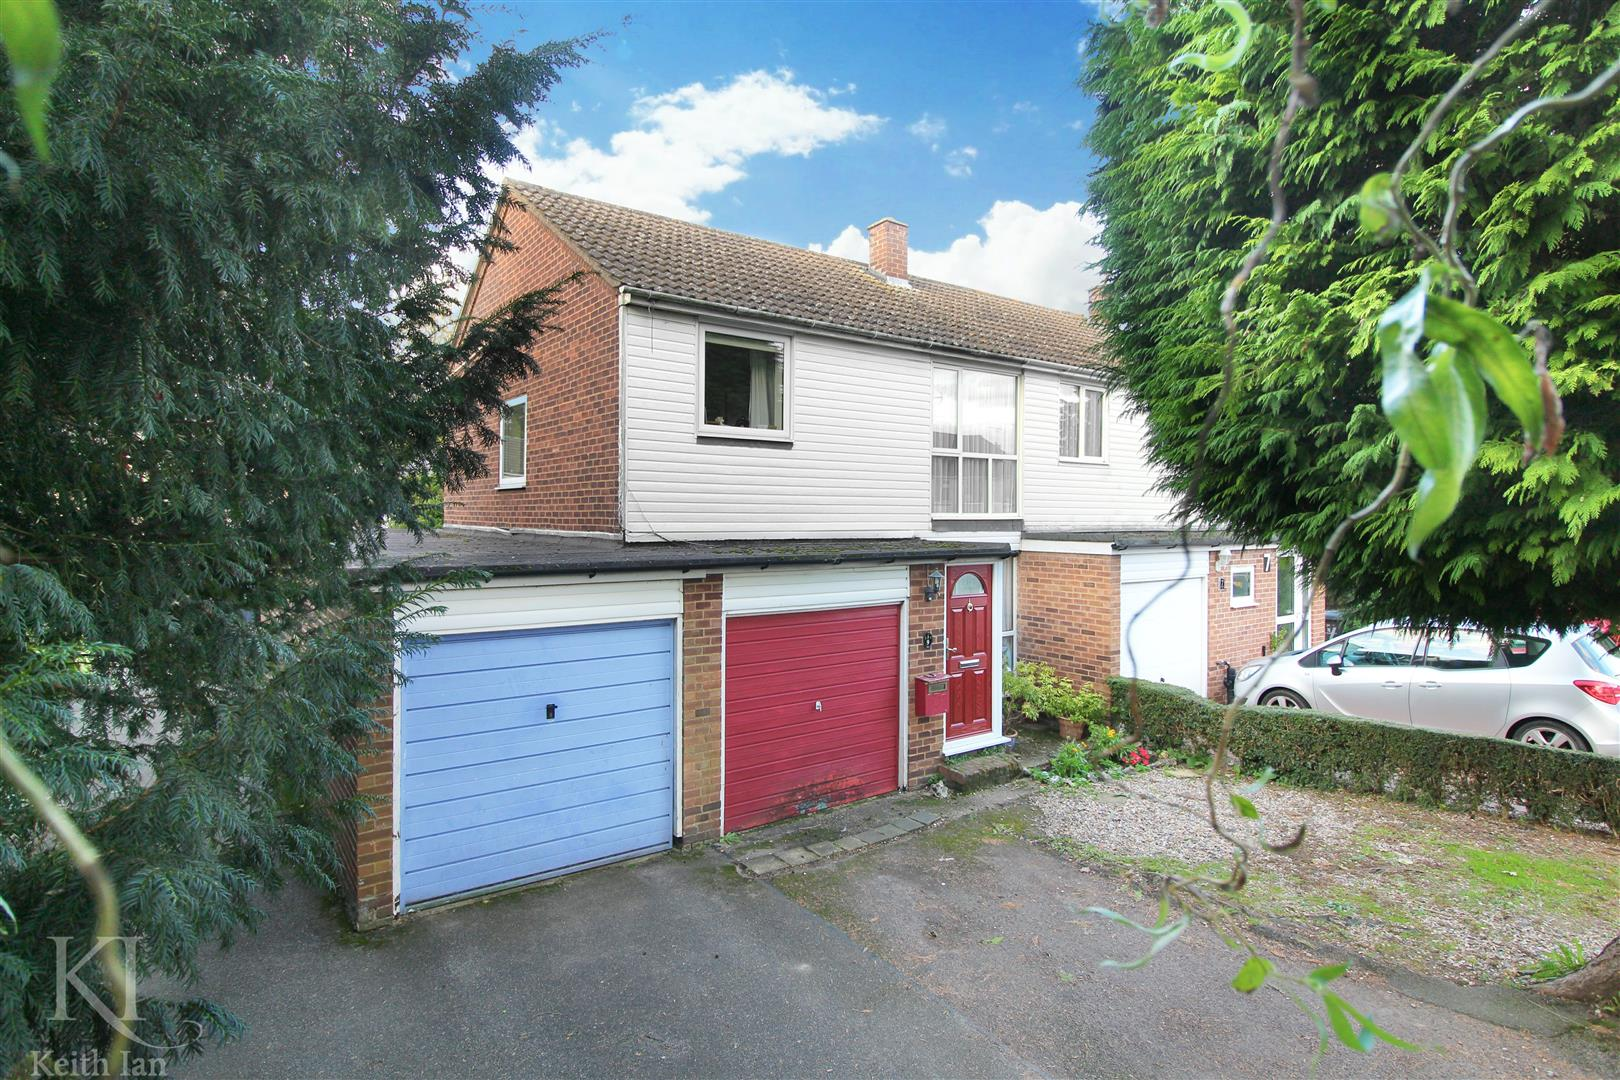 Orchard Close, Stanstead Abbotts, Ware